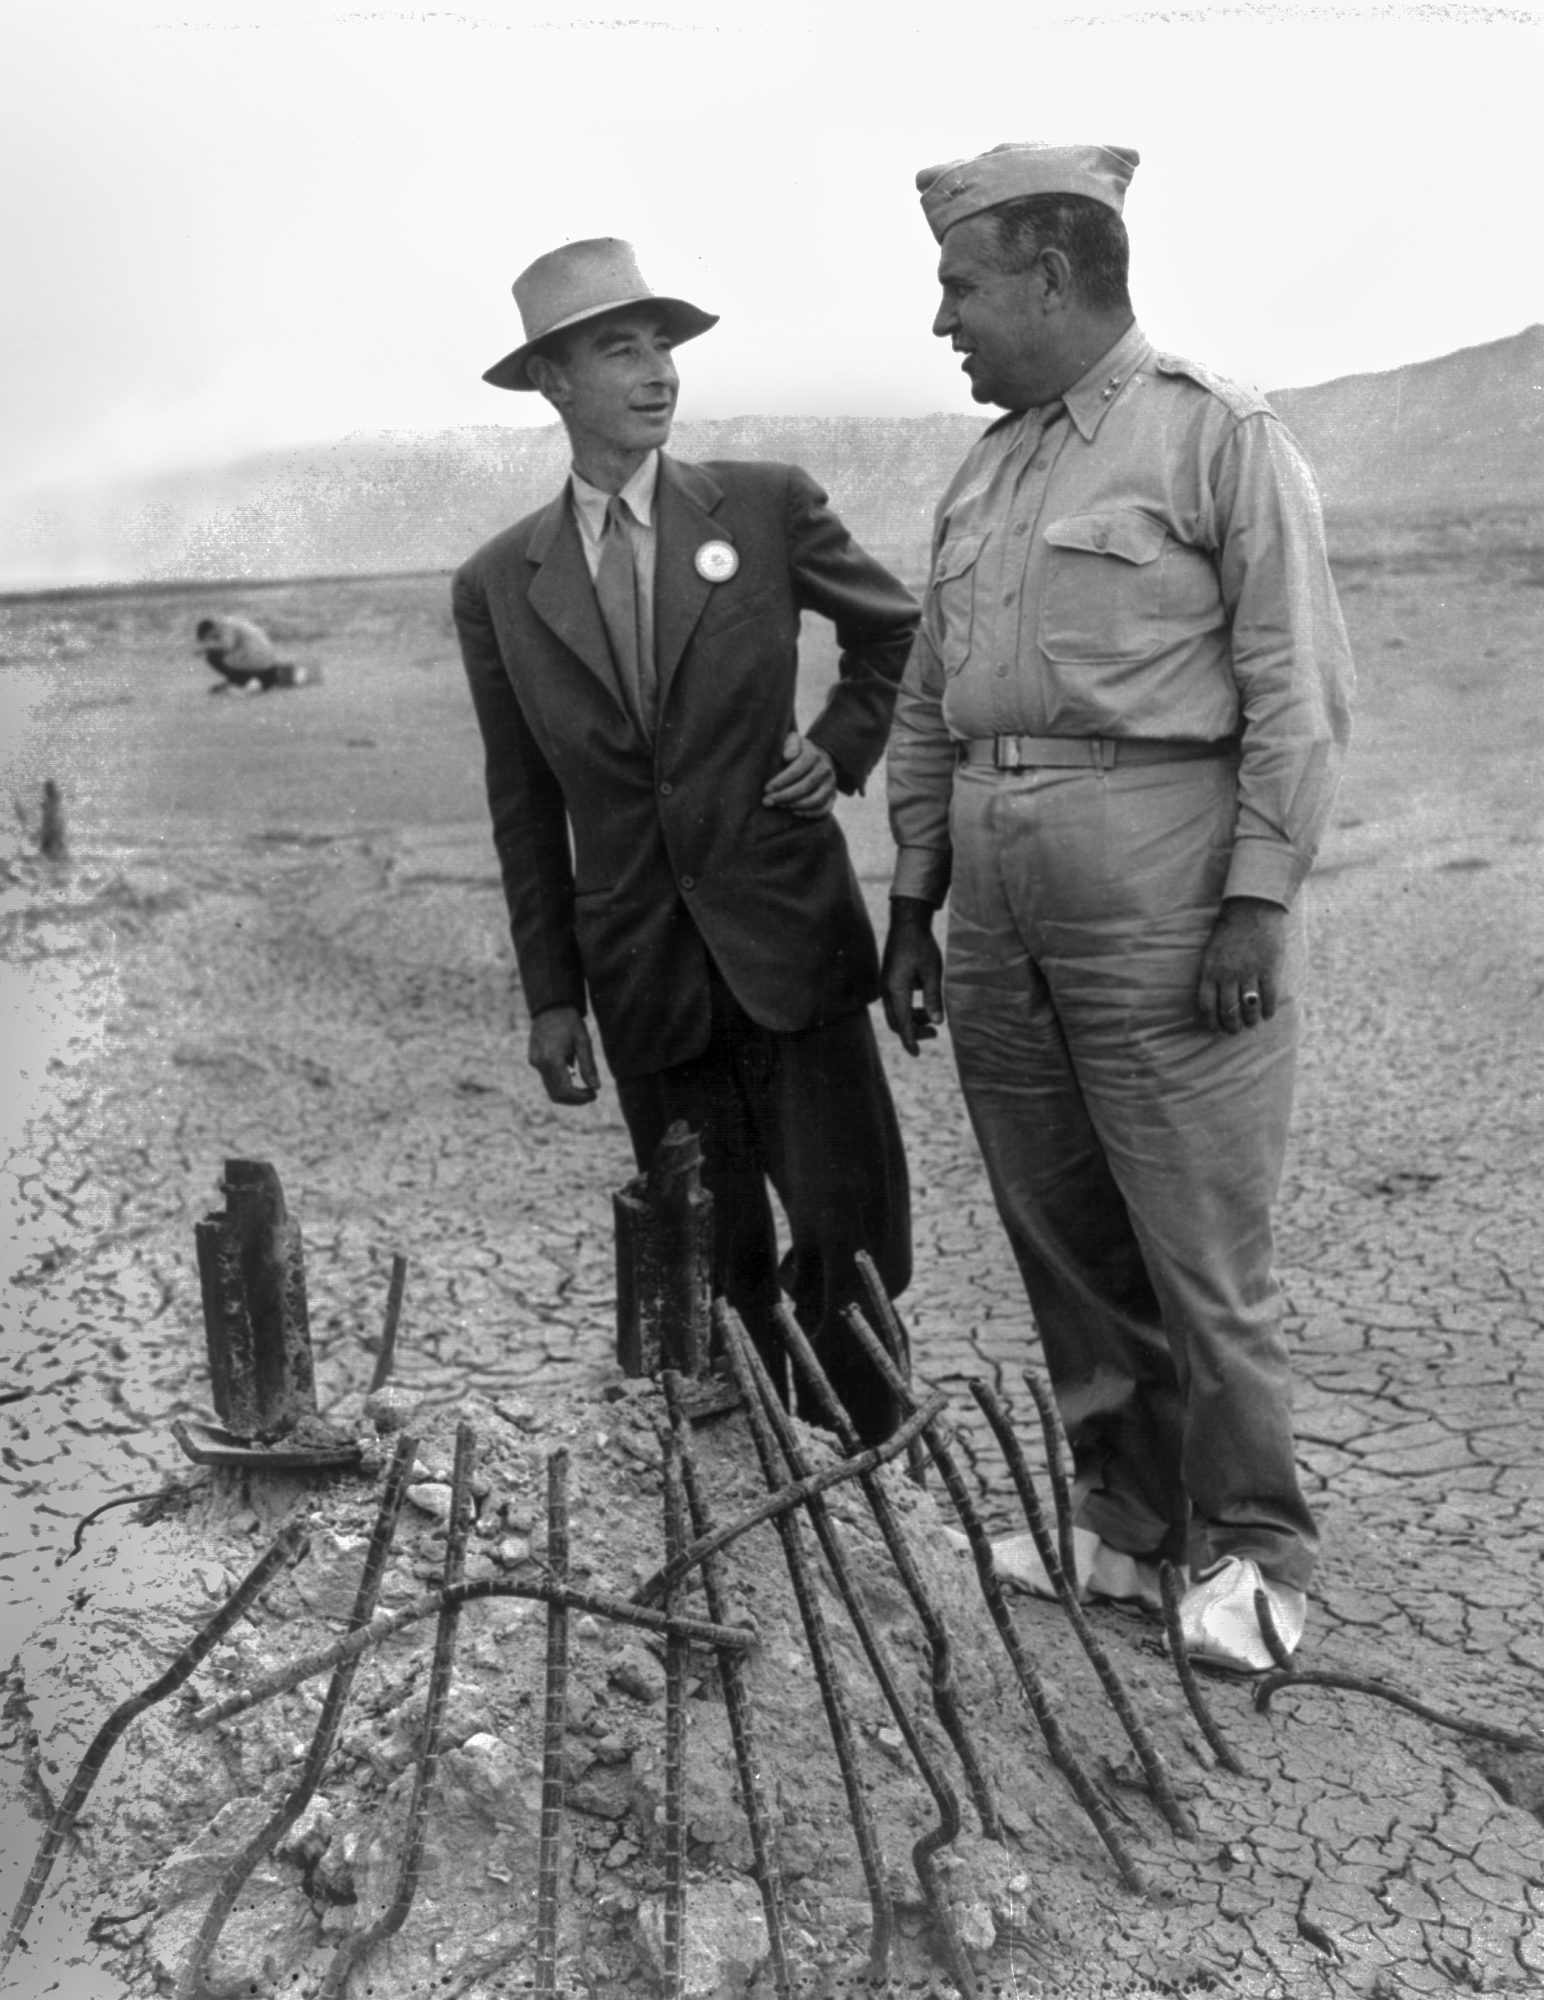 General Leslie Groves and Dr. Robert Oppenheimer at the site of the Trinity test in September 1945. The white overshoes were to prevent fallout from sticking to the soles of their shoes. (U.S. Army Corps of Engineers/Wikimedia)